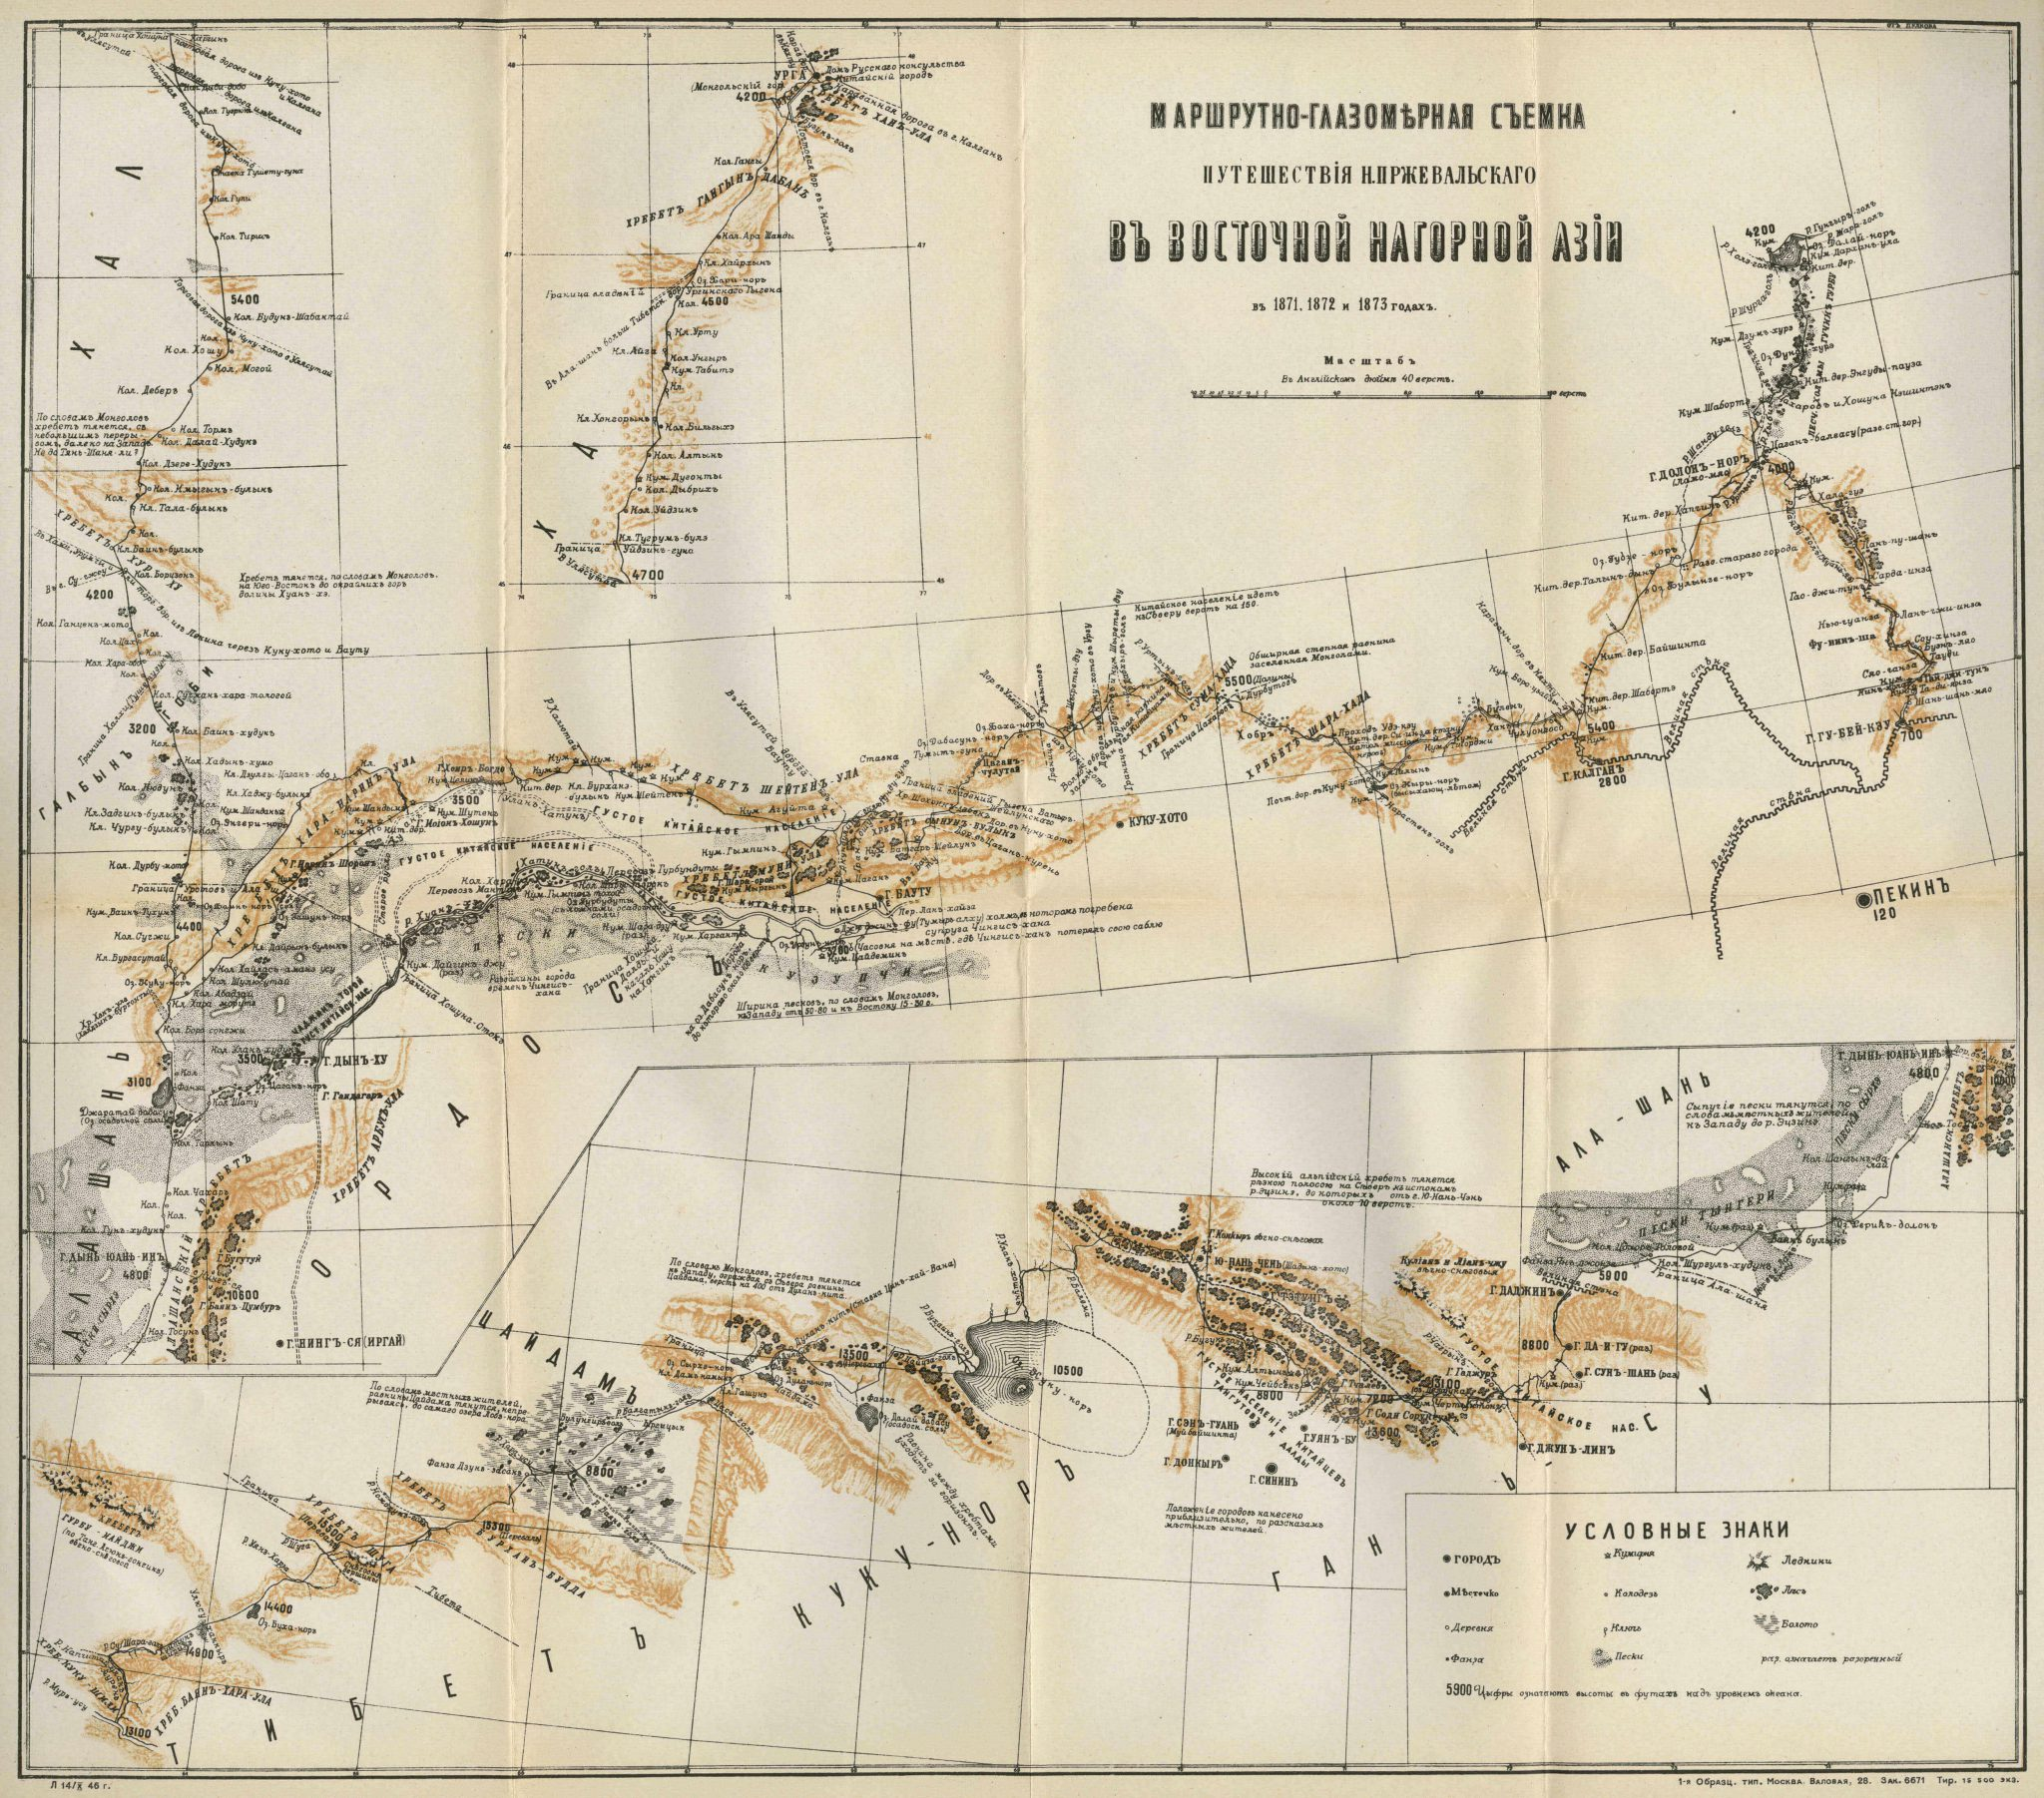 Przevalskij's expedition to East Asia, 1871-1873